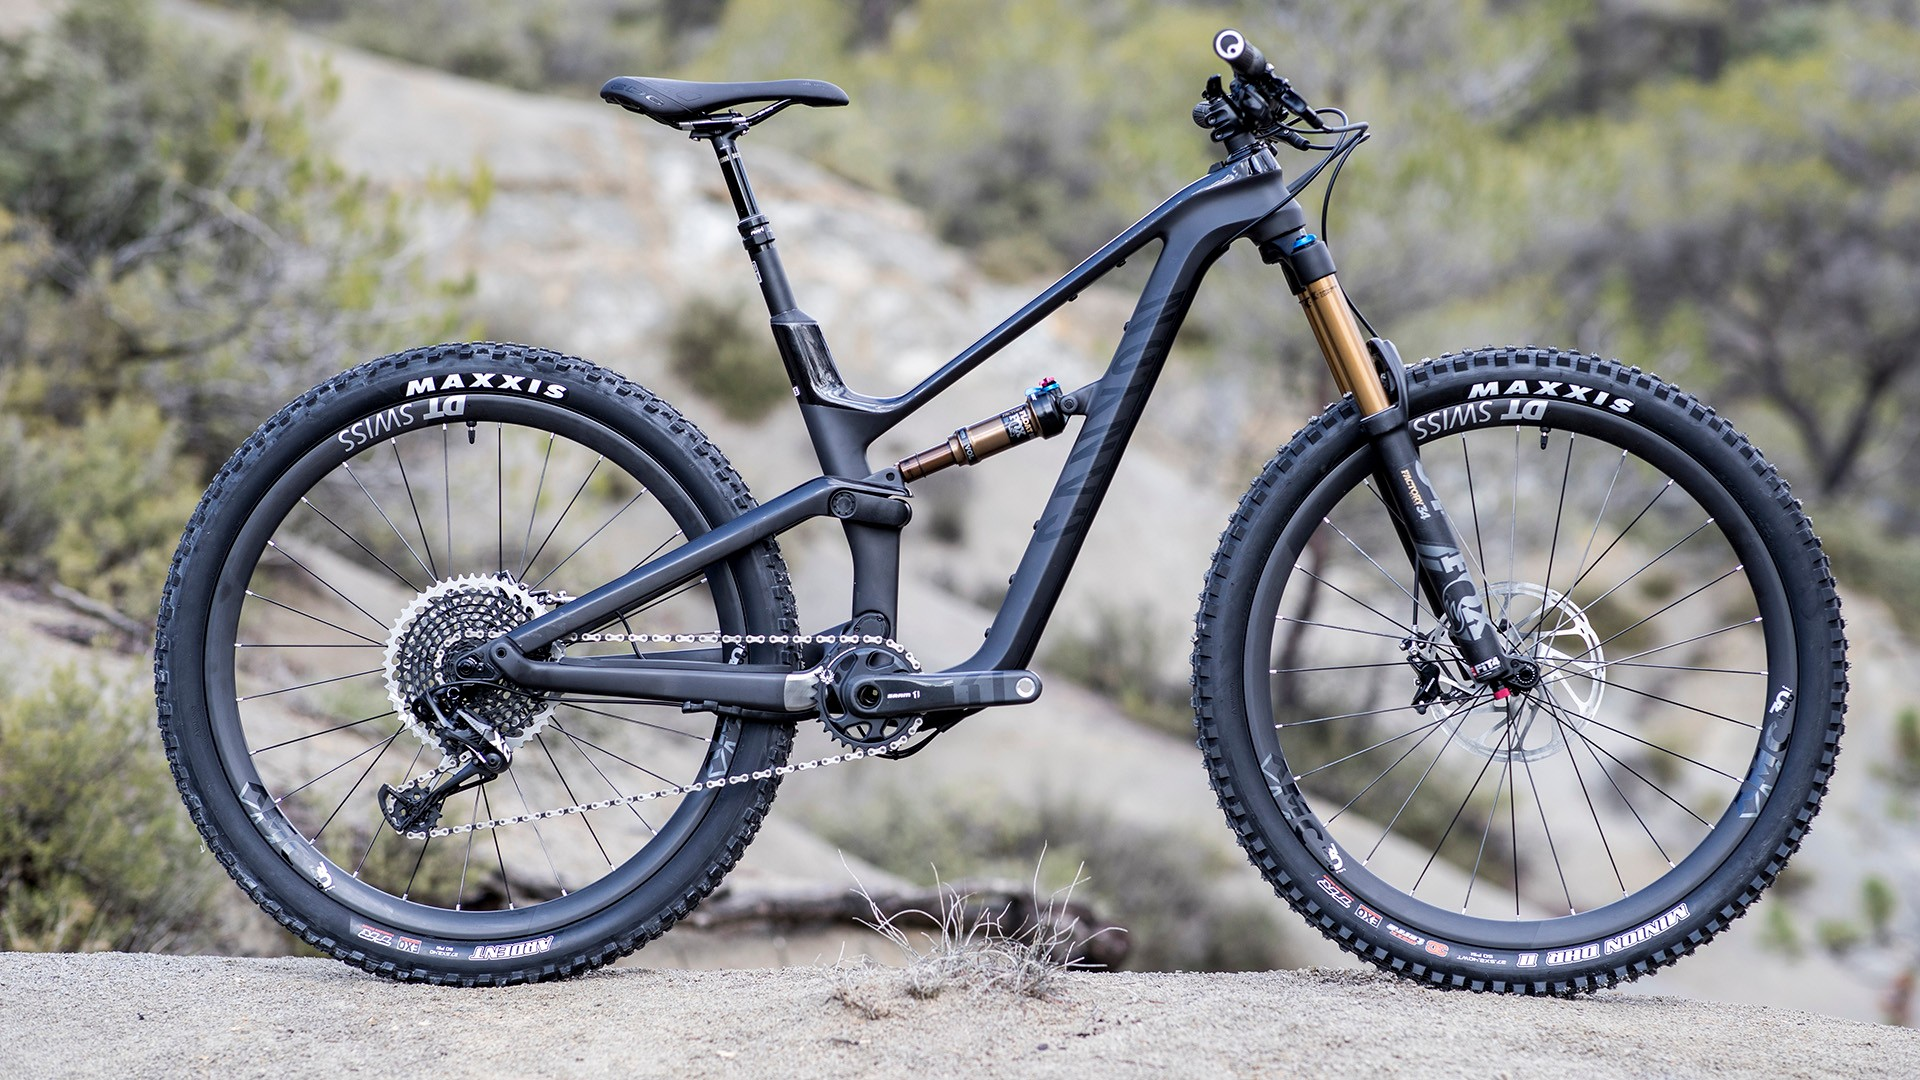 The new Canyon Spectral WMN with women's specific geometry